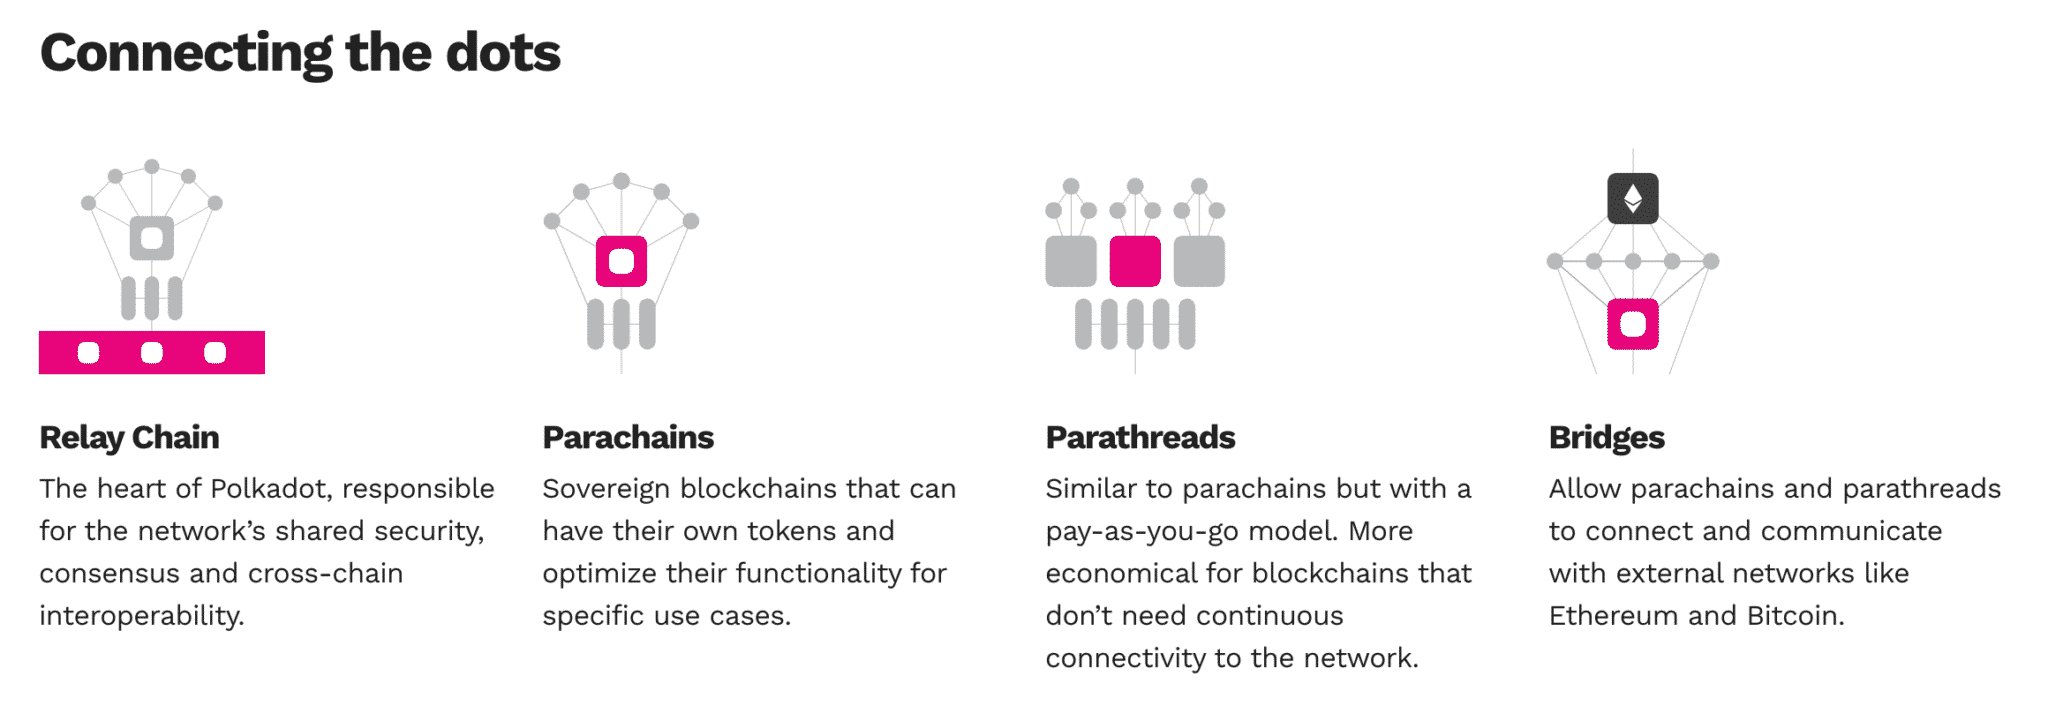 The Polkadot network in a nutshell